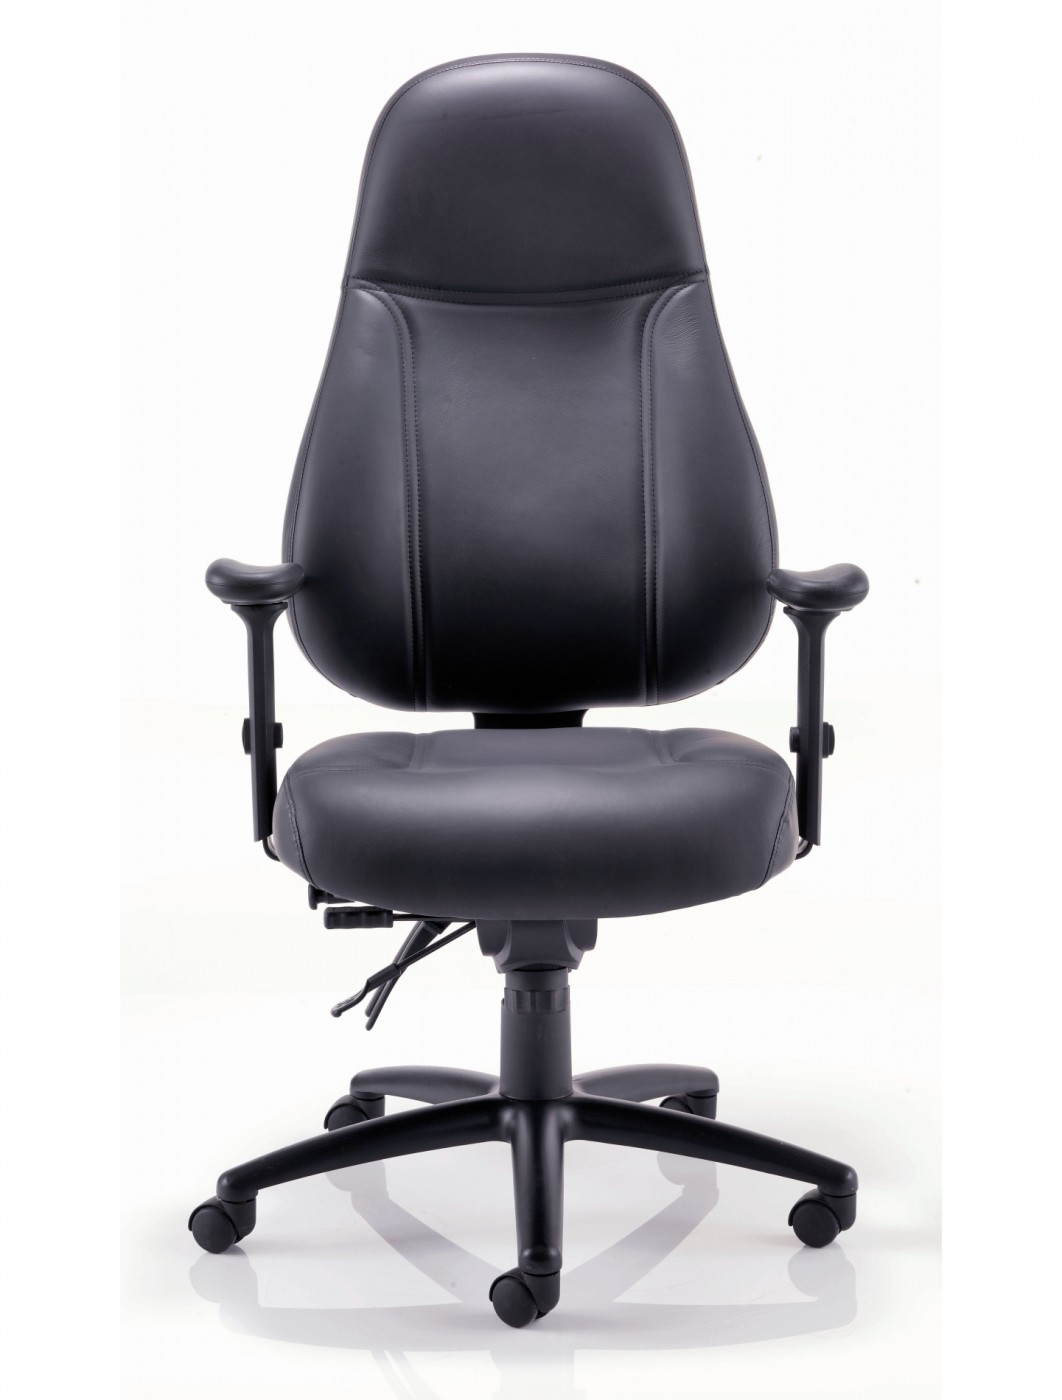 Cheetah Chair Office Chairs Tc Cheetah Black Leather Office Chair